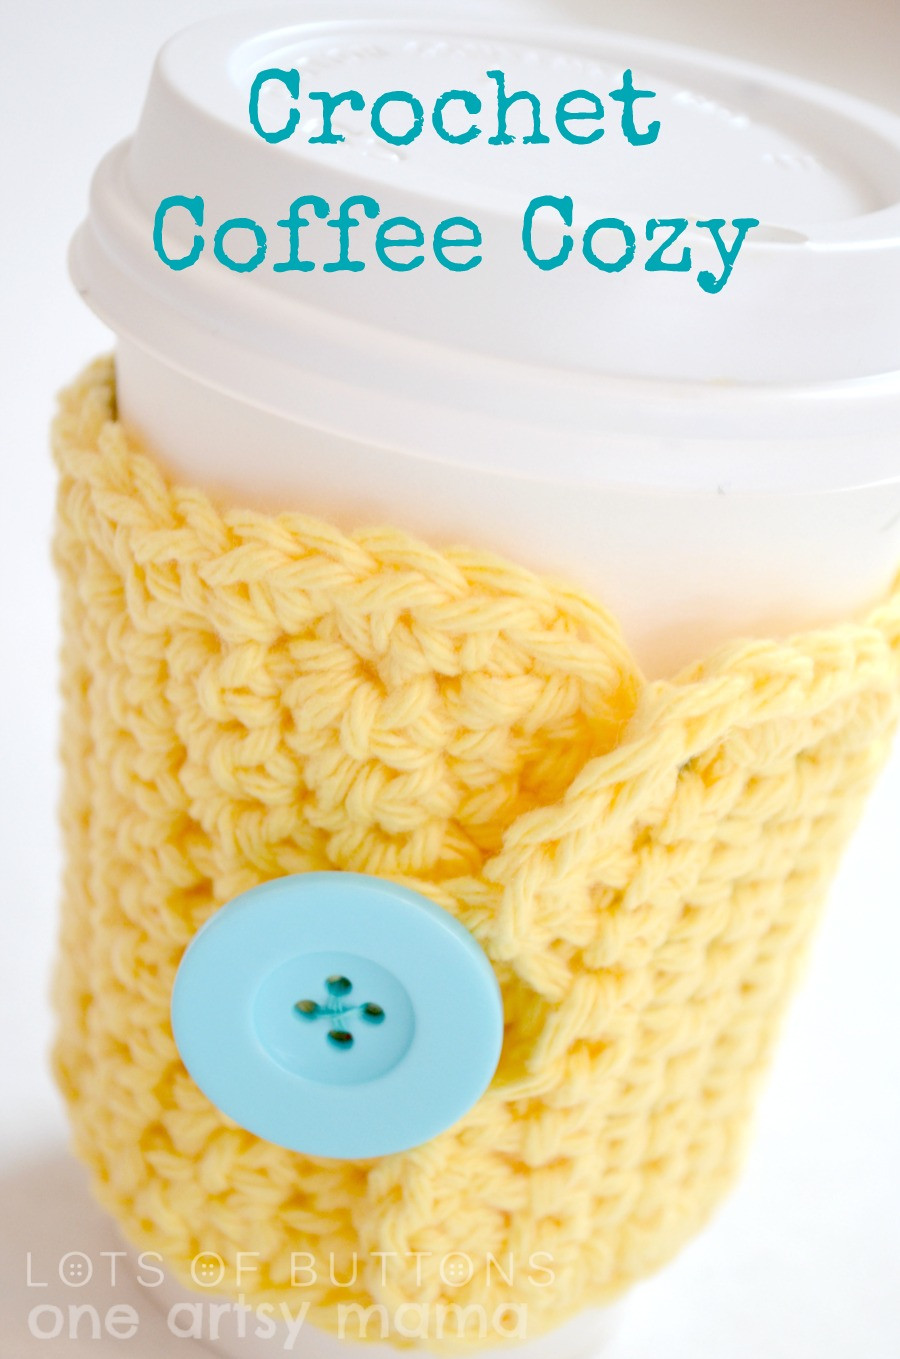 Crochet Coffee Cup Cozy Lovely Crochet Coffee Cozy Amy Latta Creations Of Crochet Coffee Cup Cozy Awesome Crochet and Other Stuff Crochet A Mug Cozy Free Pattern